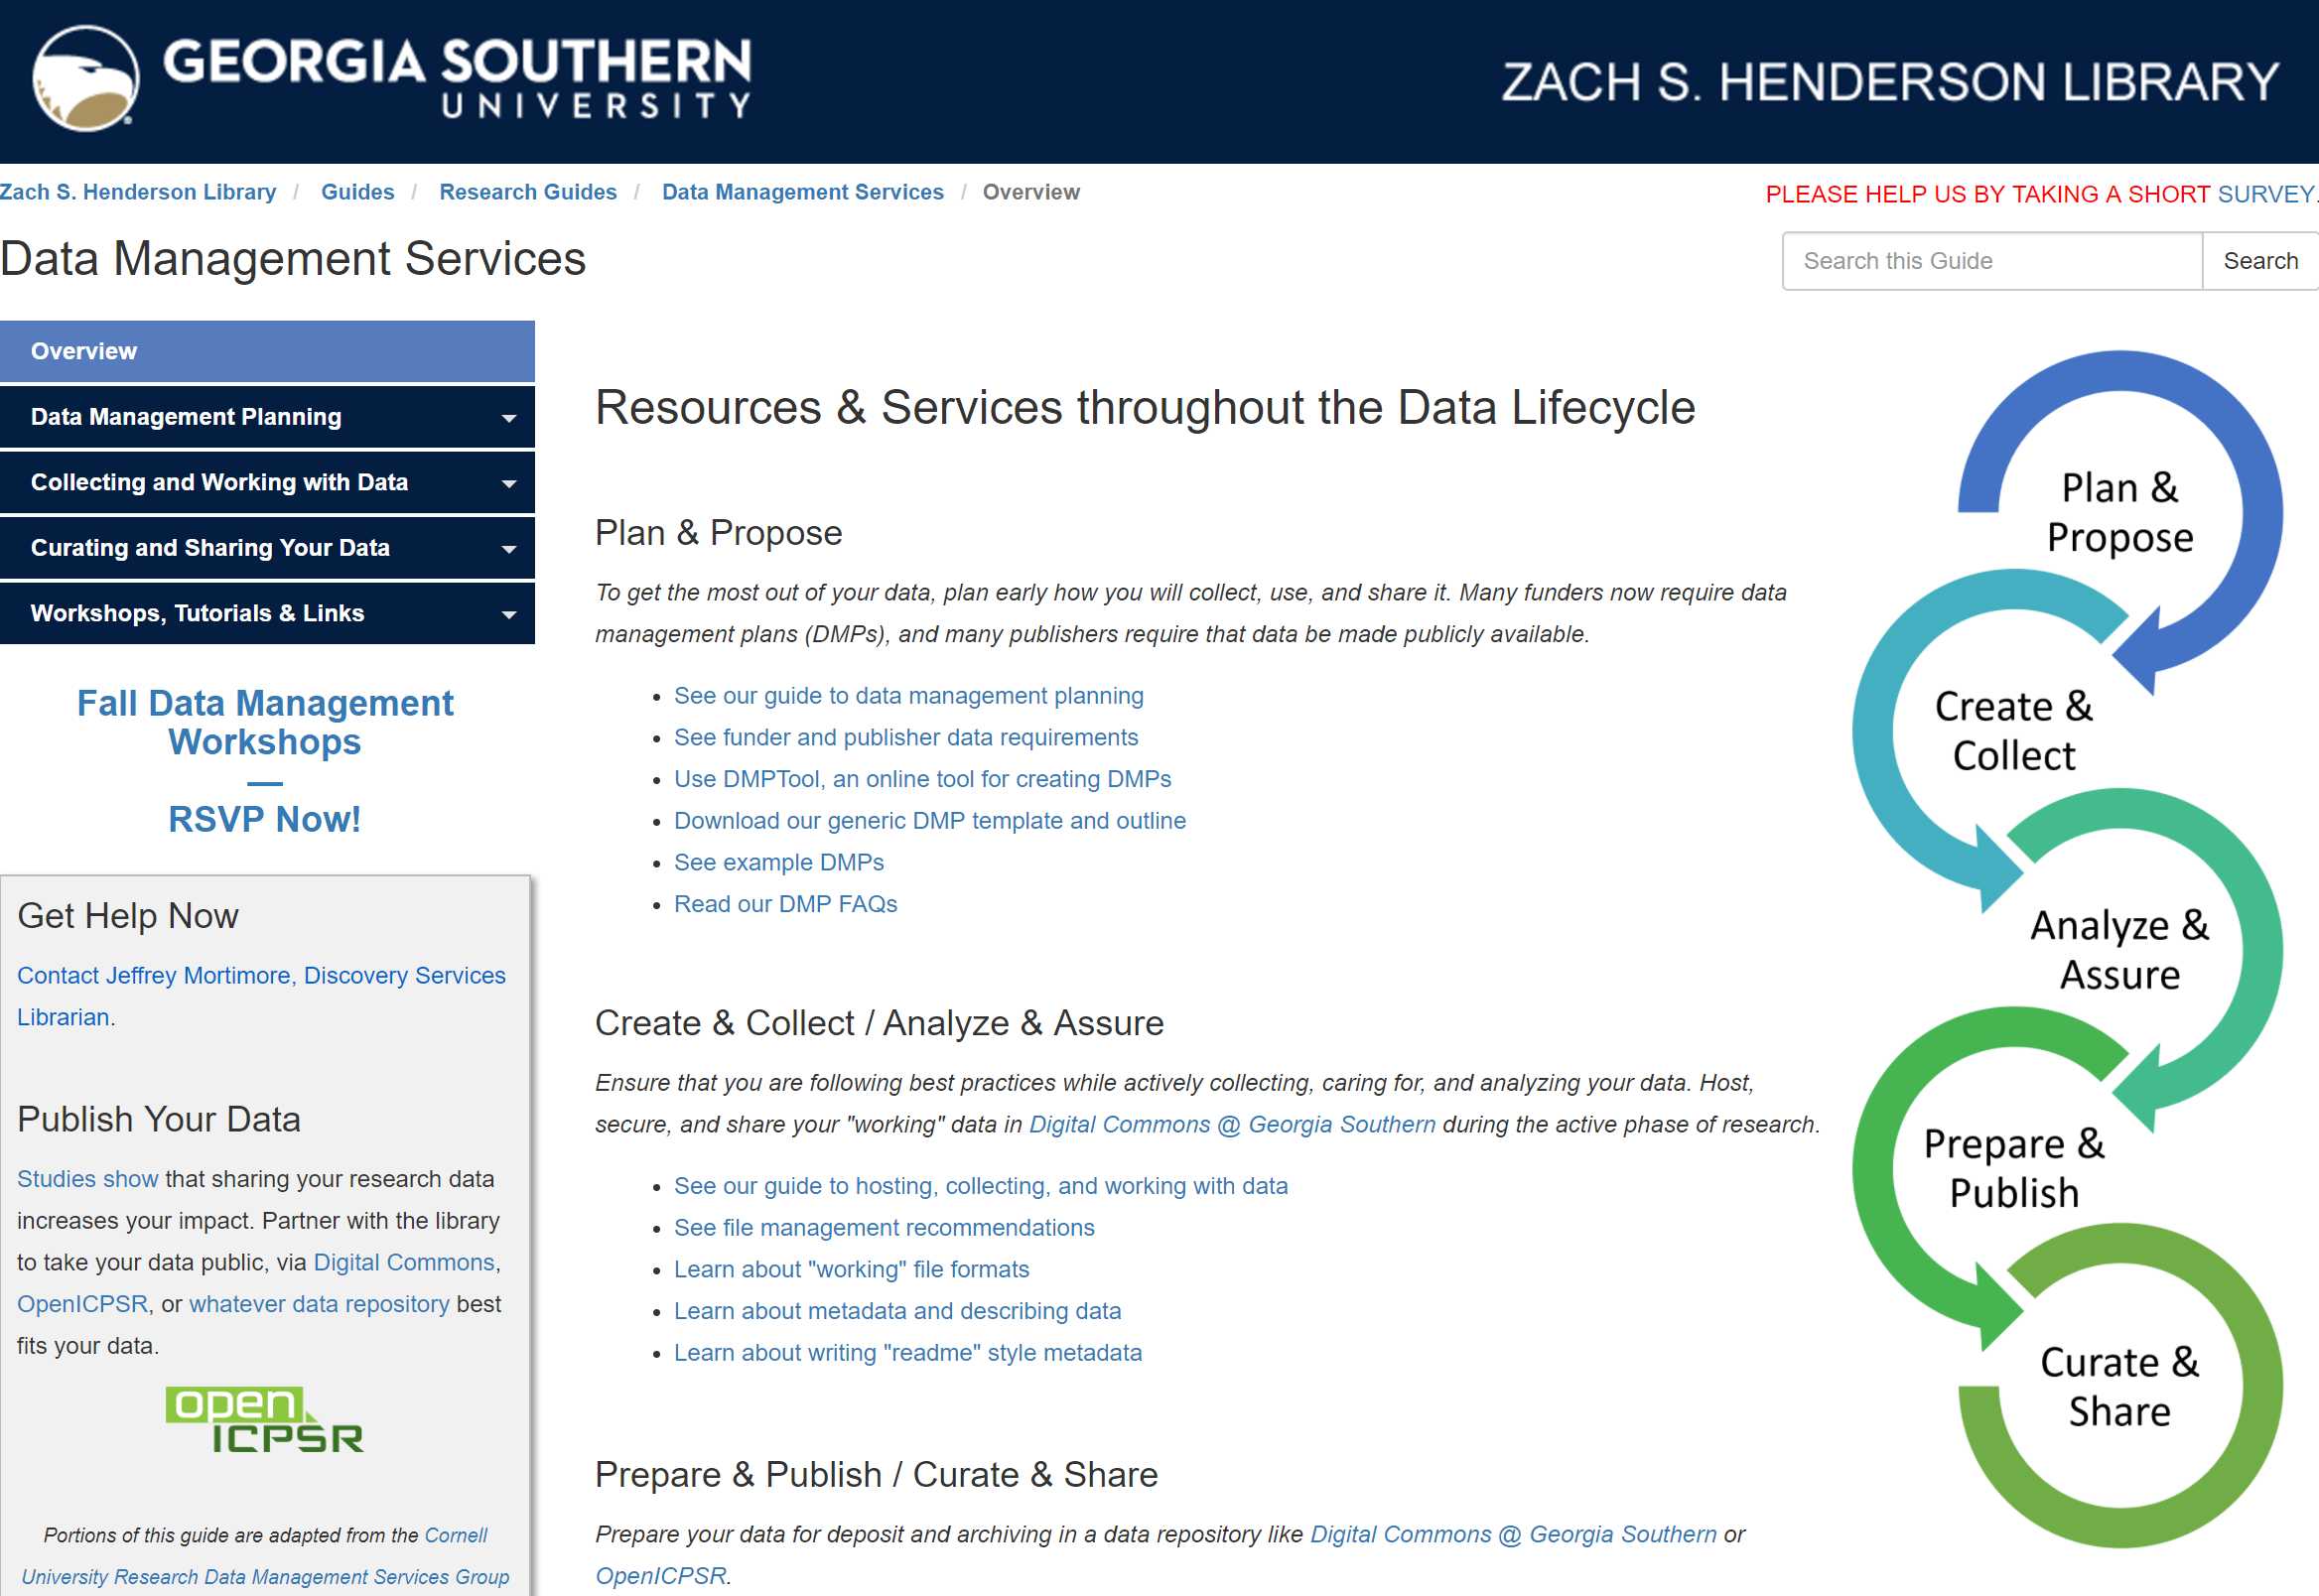 Data Management Services Homepage